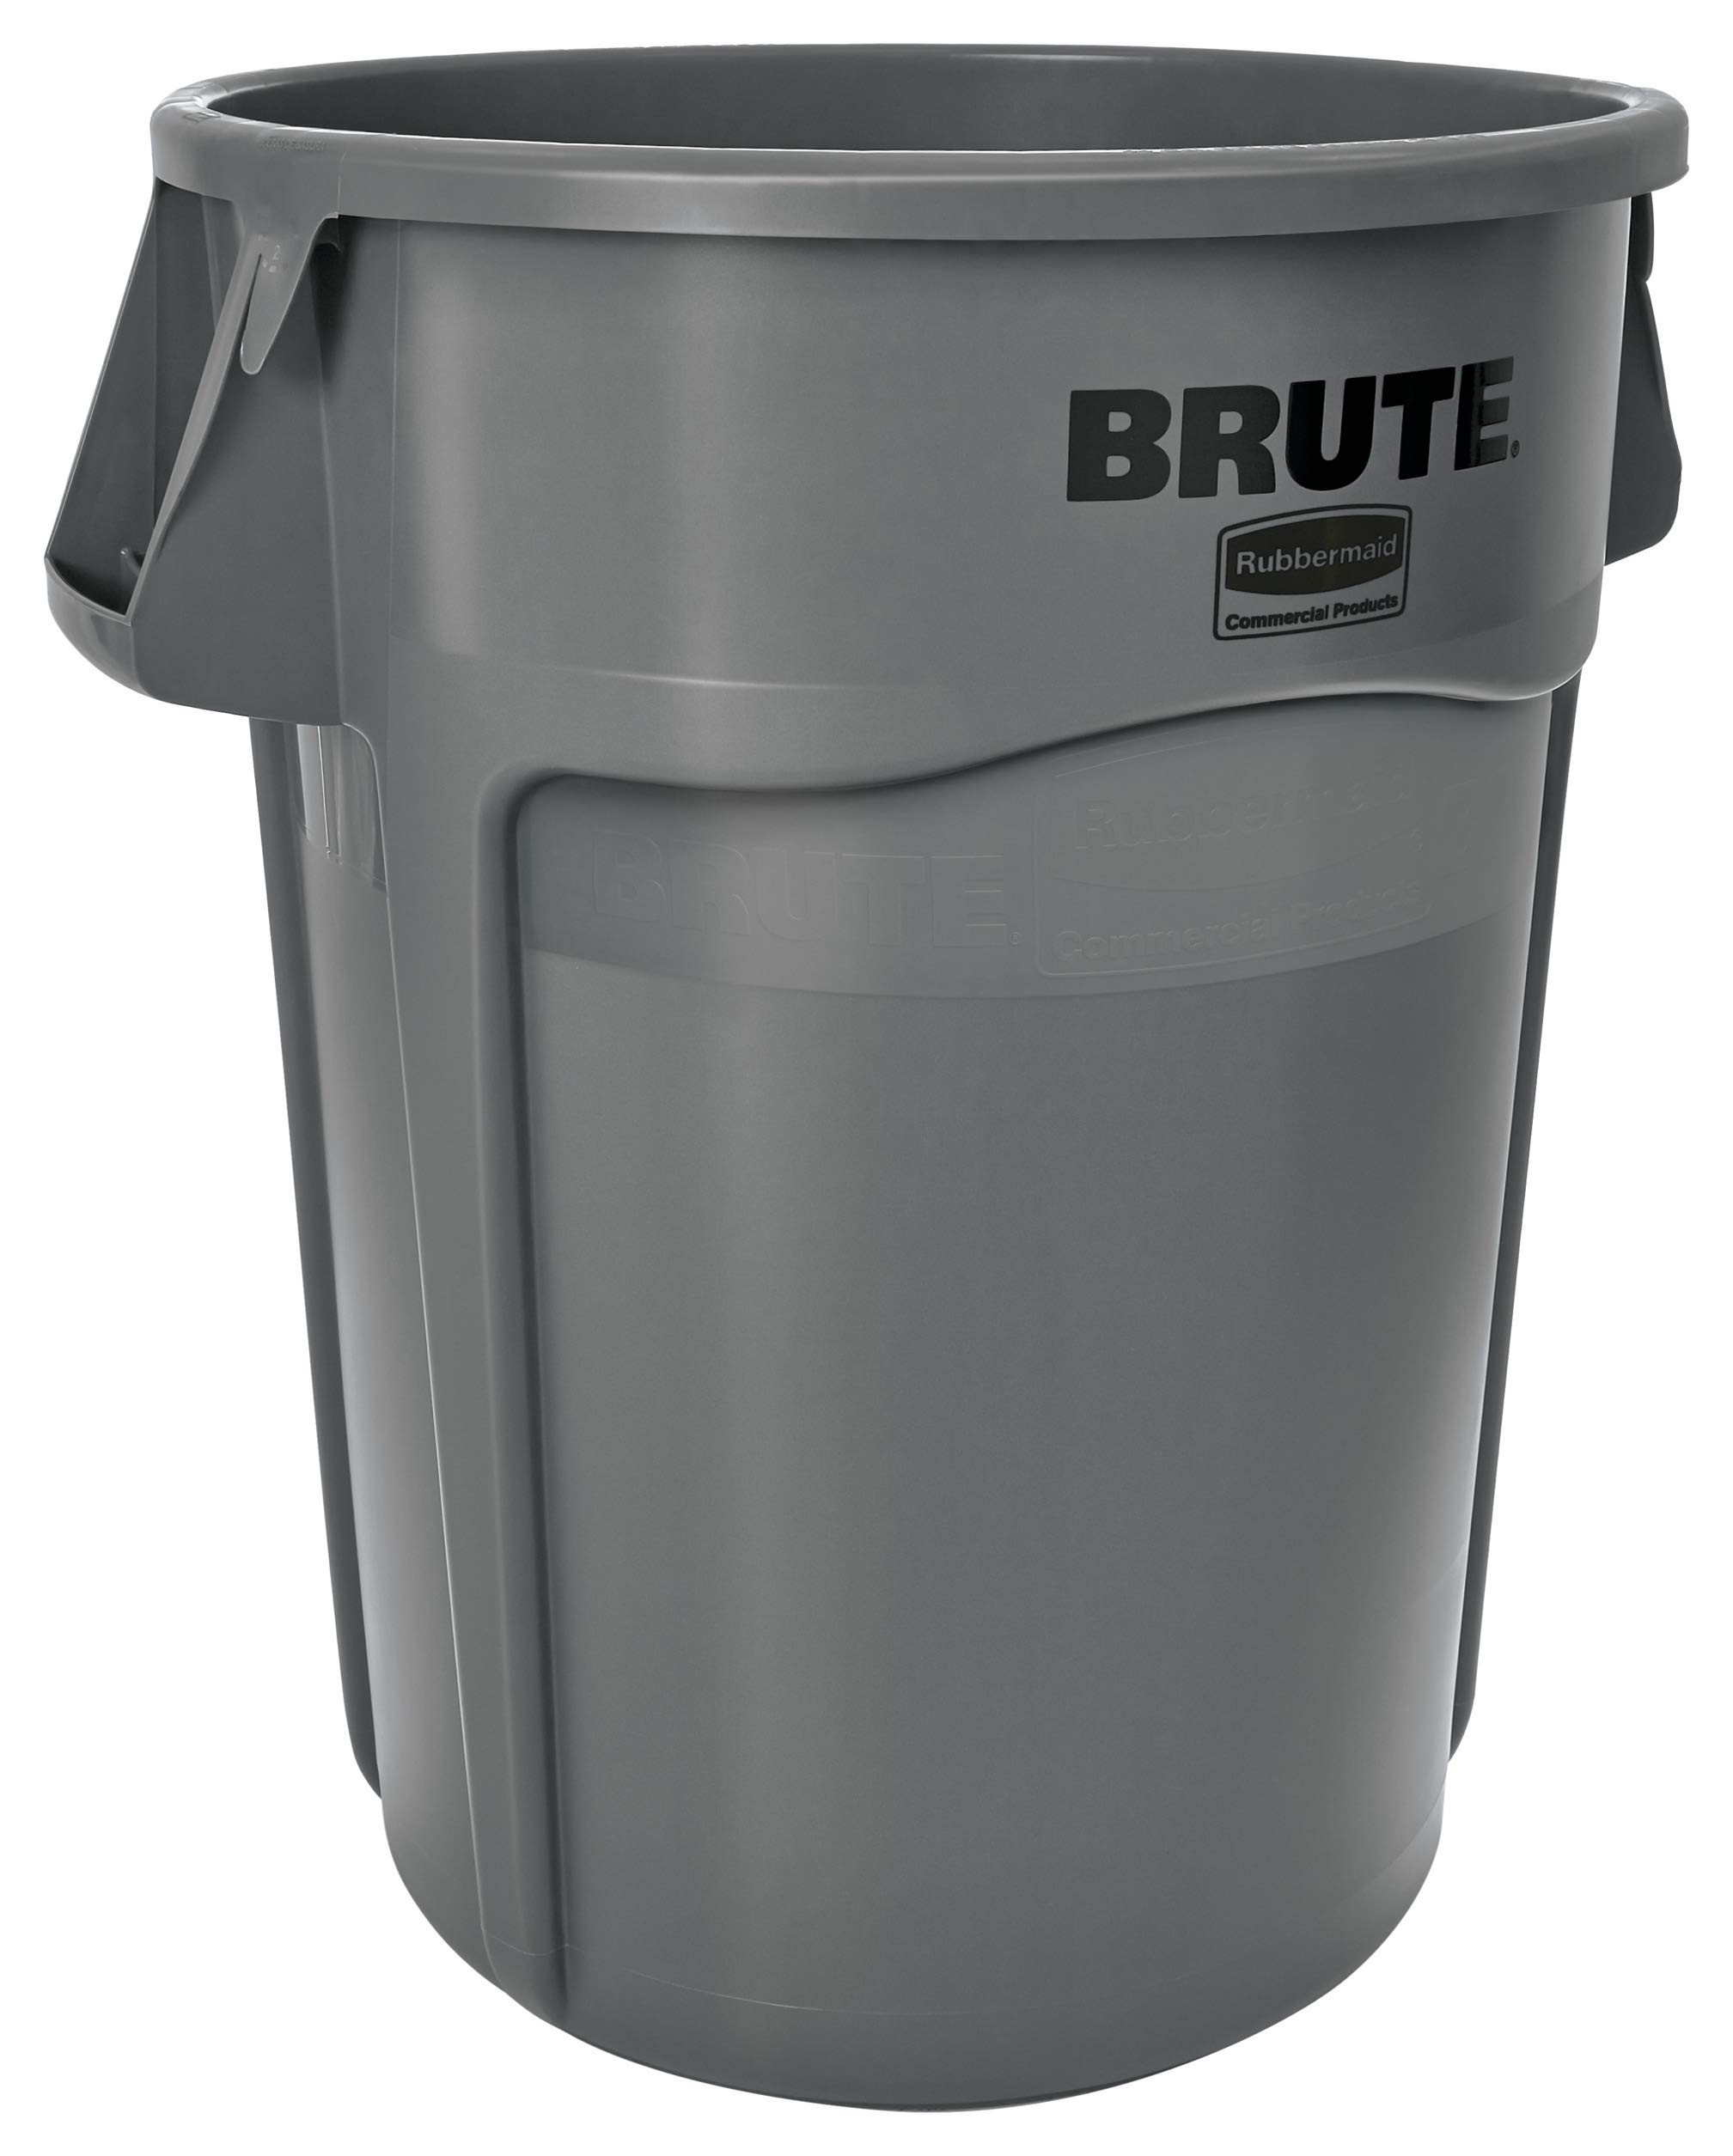 Rubbermaid Commercial Products FG265500GRAY BRUTE Heavy-Duty Round Trash/Garbage Can, 55-Gallon, Gray by Rubbermaid Commercial Products